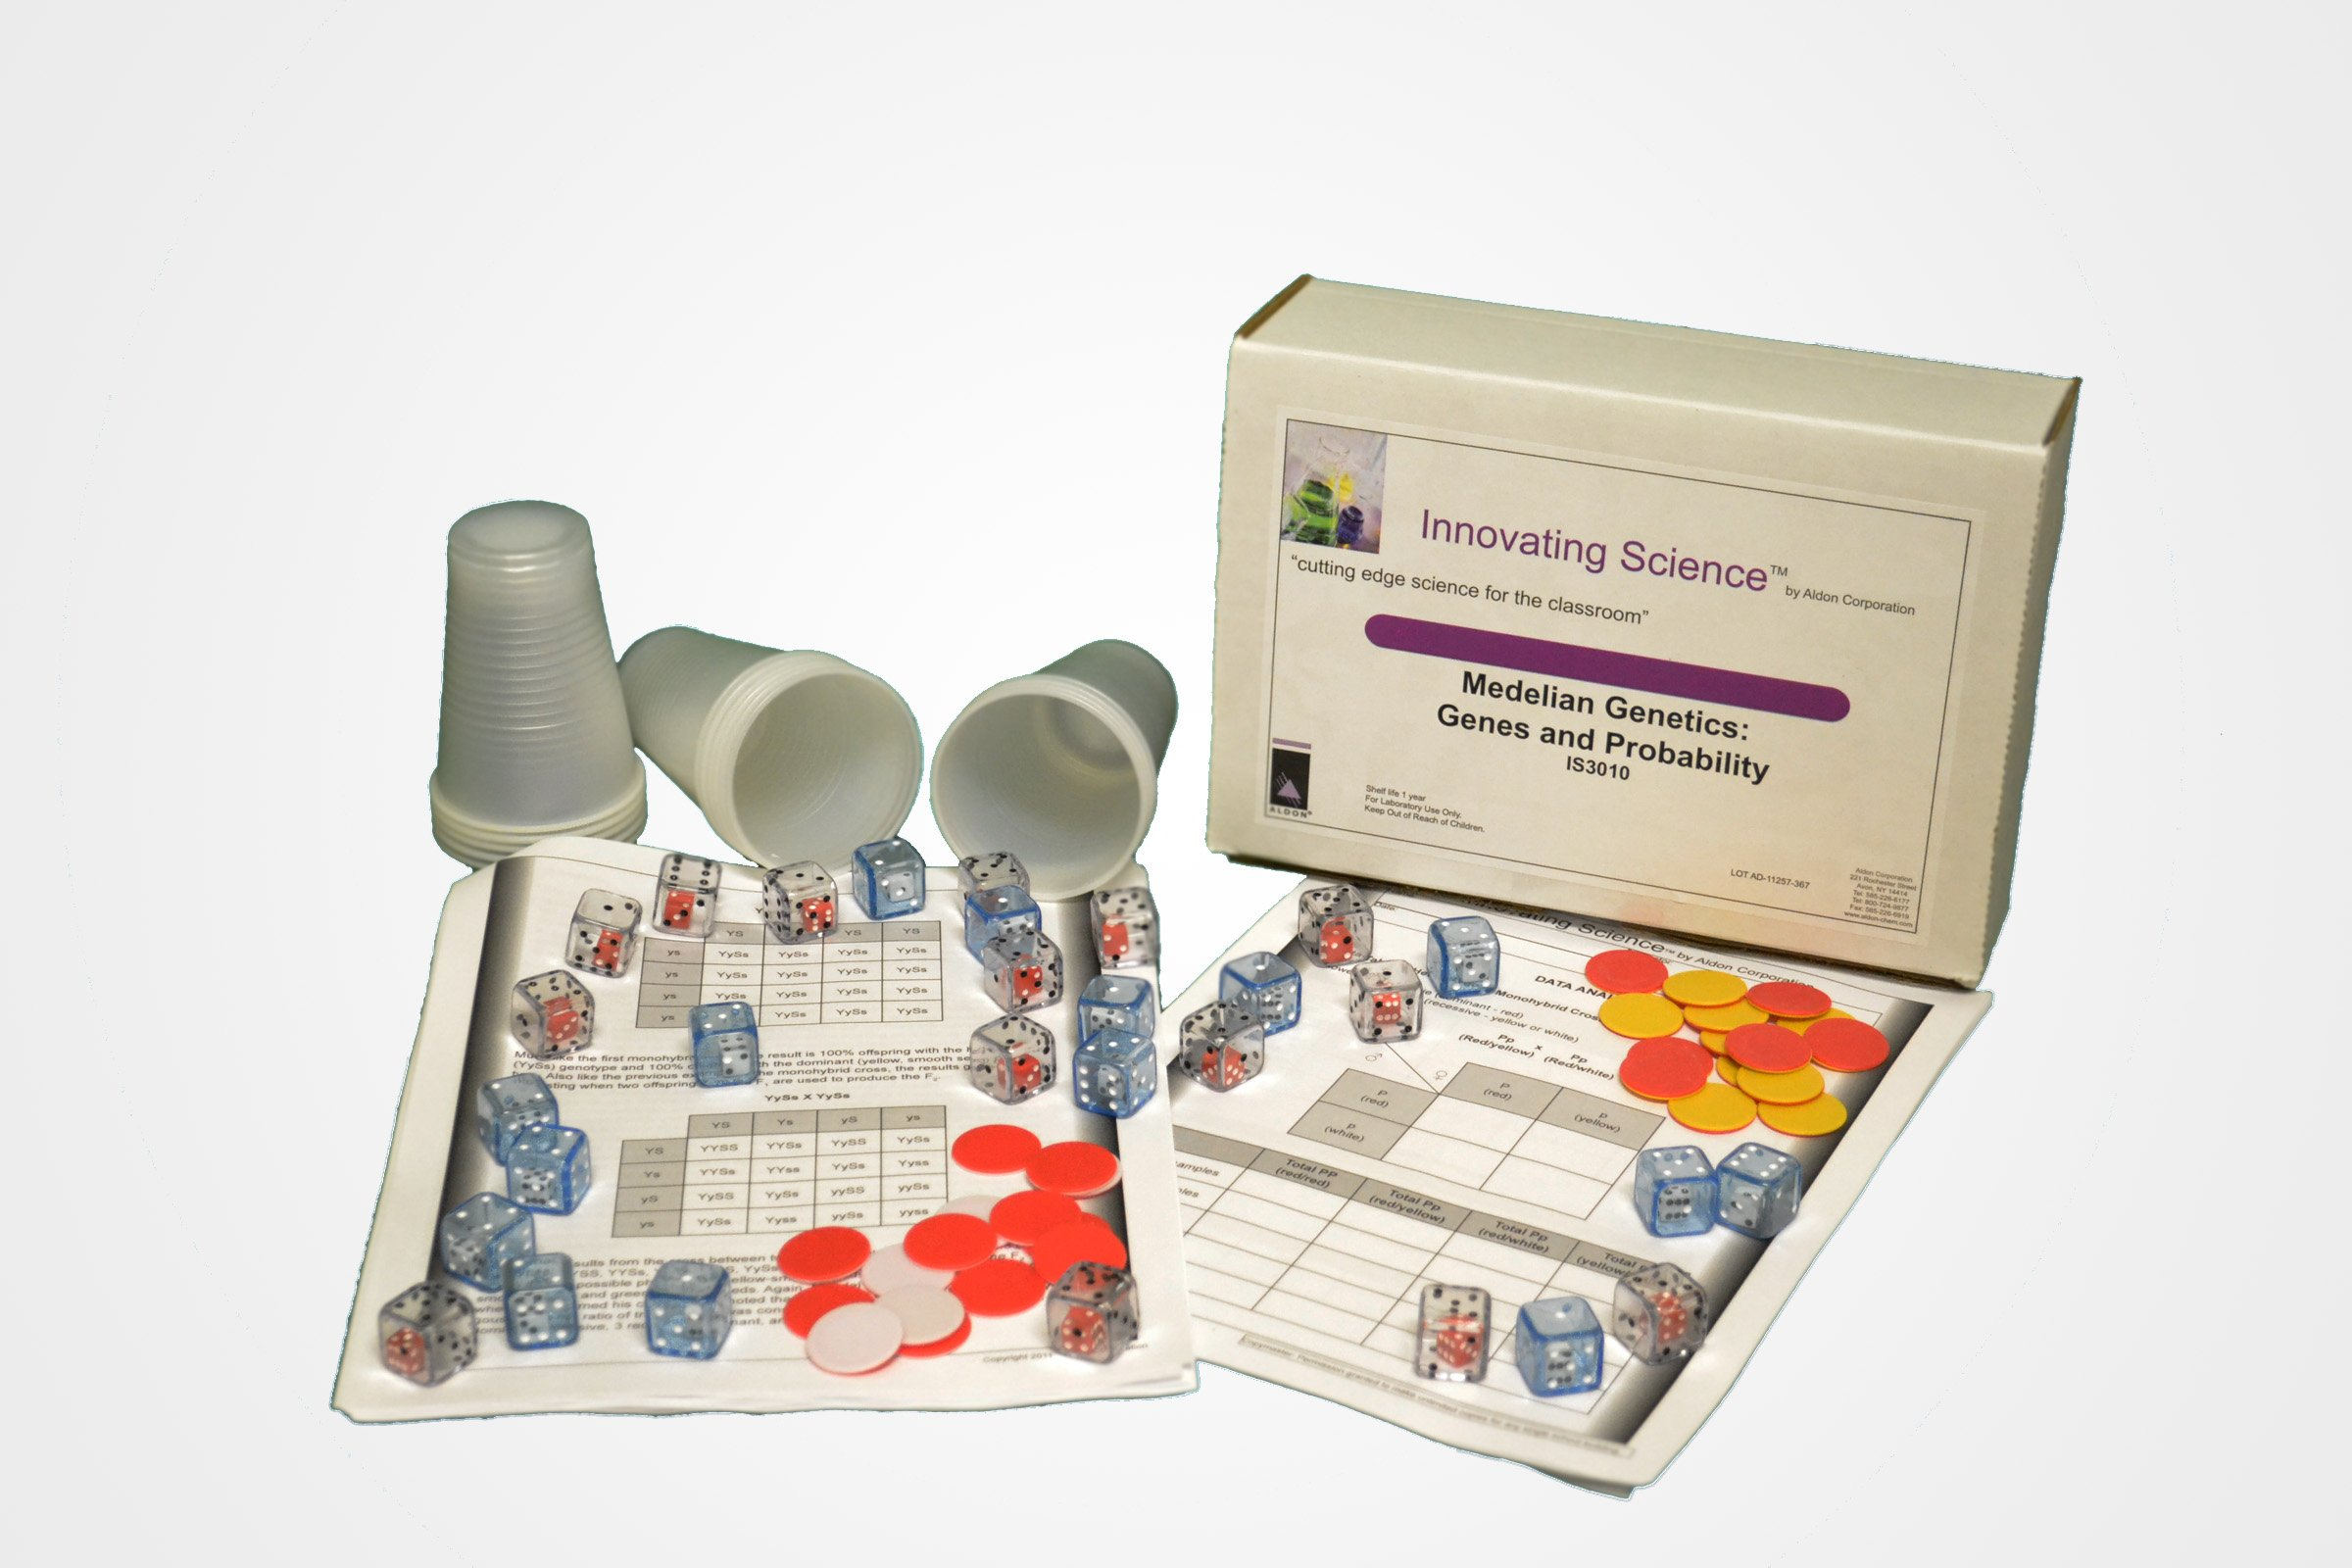 Innovating Science Introduction to Mendelian Genetics Kit by Innovating Science